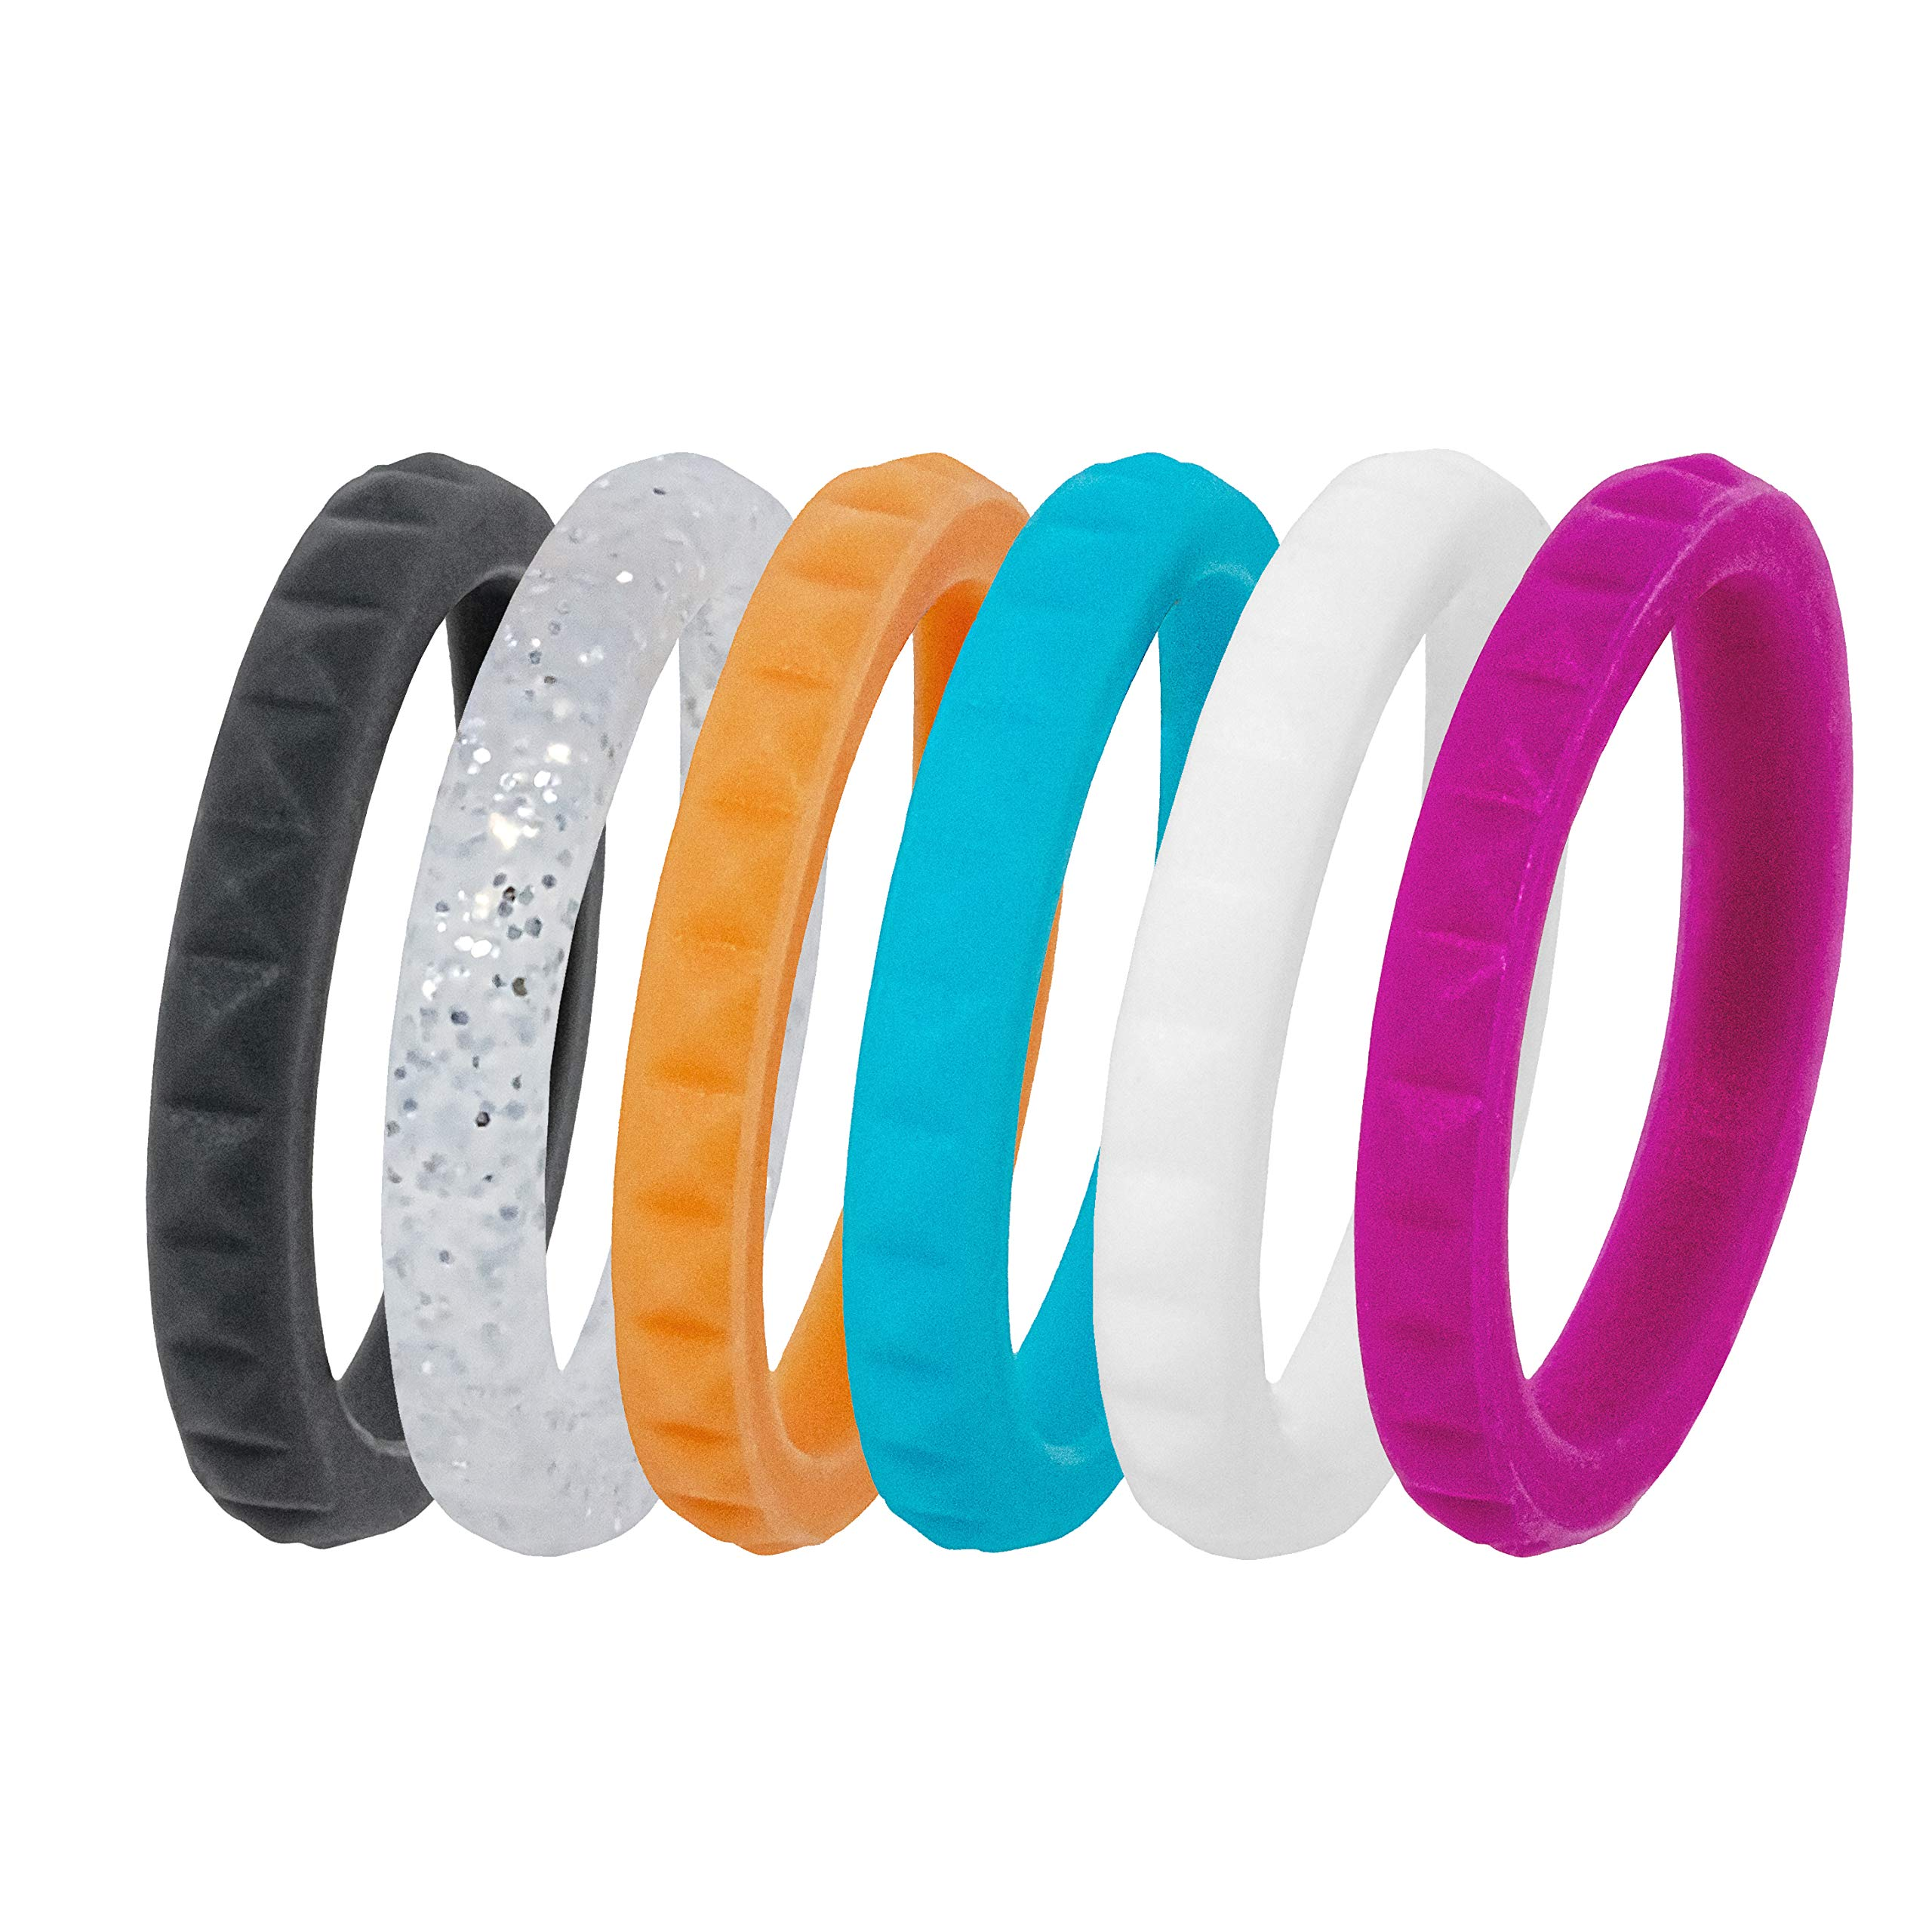 Safe Material and High Durability MIVA Silicone Wedding Ring for Women Rubber Wedding Bands Sets for Her Womens Active Lifestyle Fashion Rings Packs